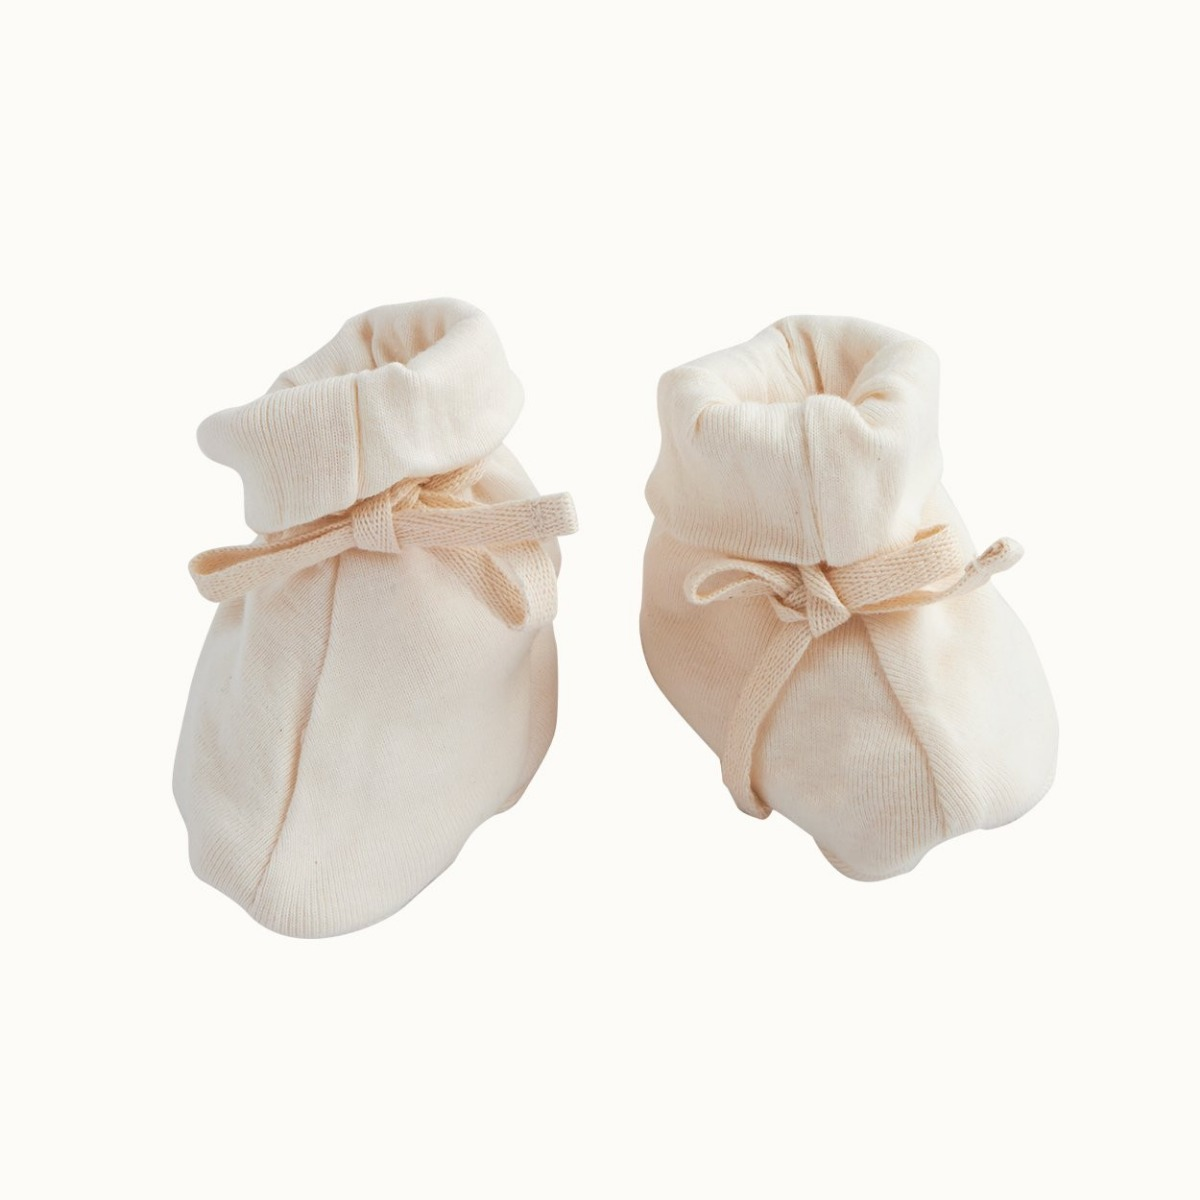 Nature Baby Organic Cotton Booties 0-3M -Natural